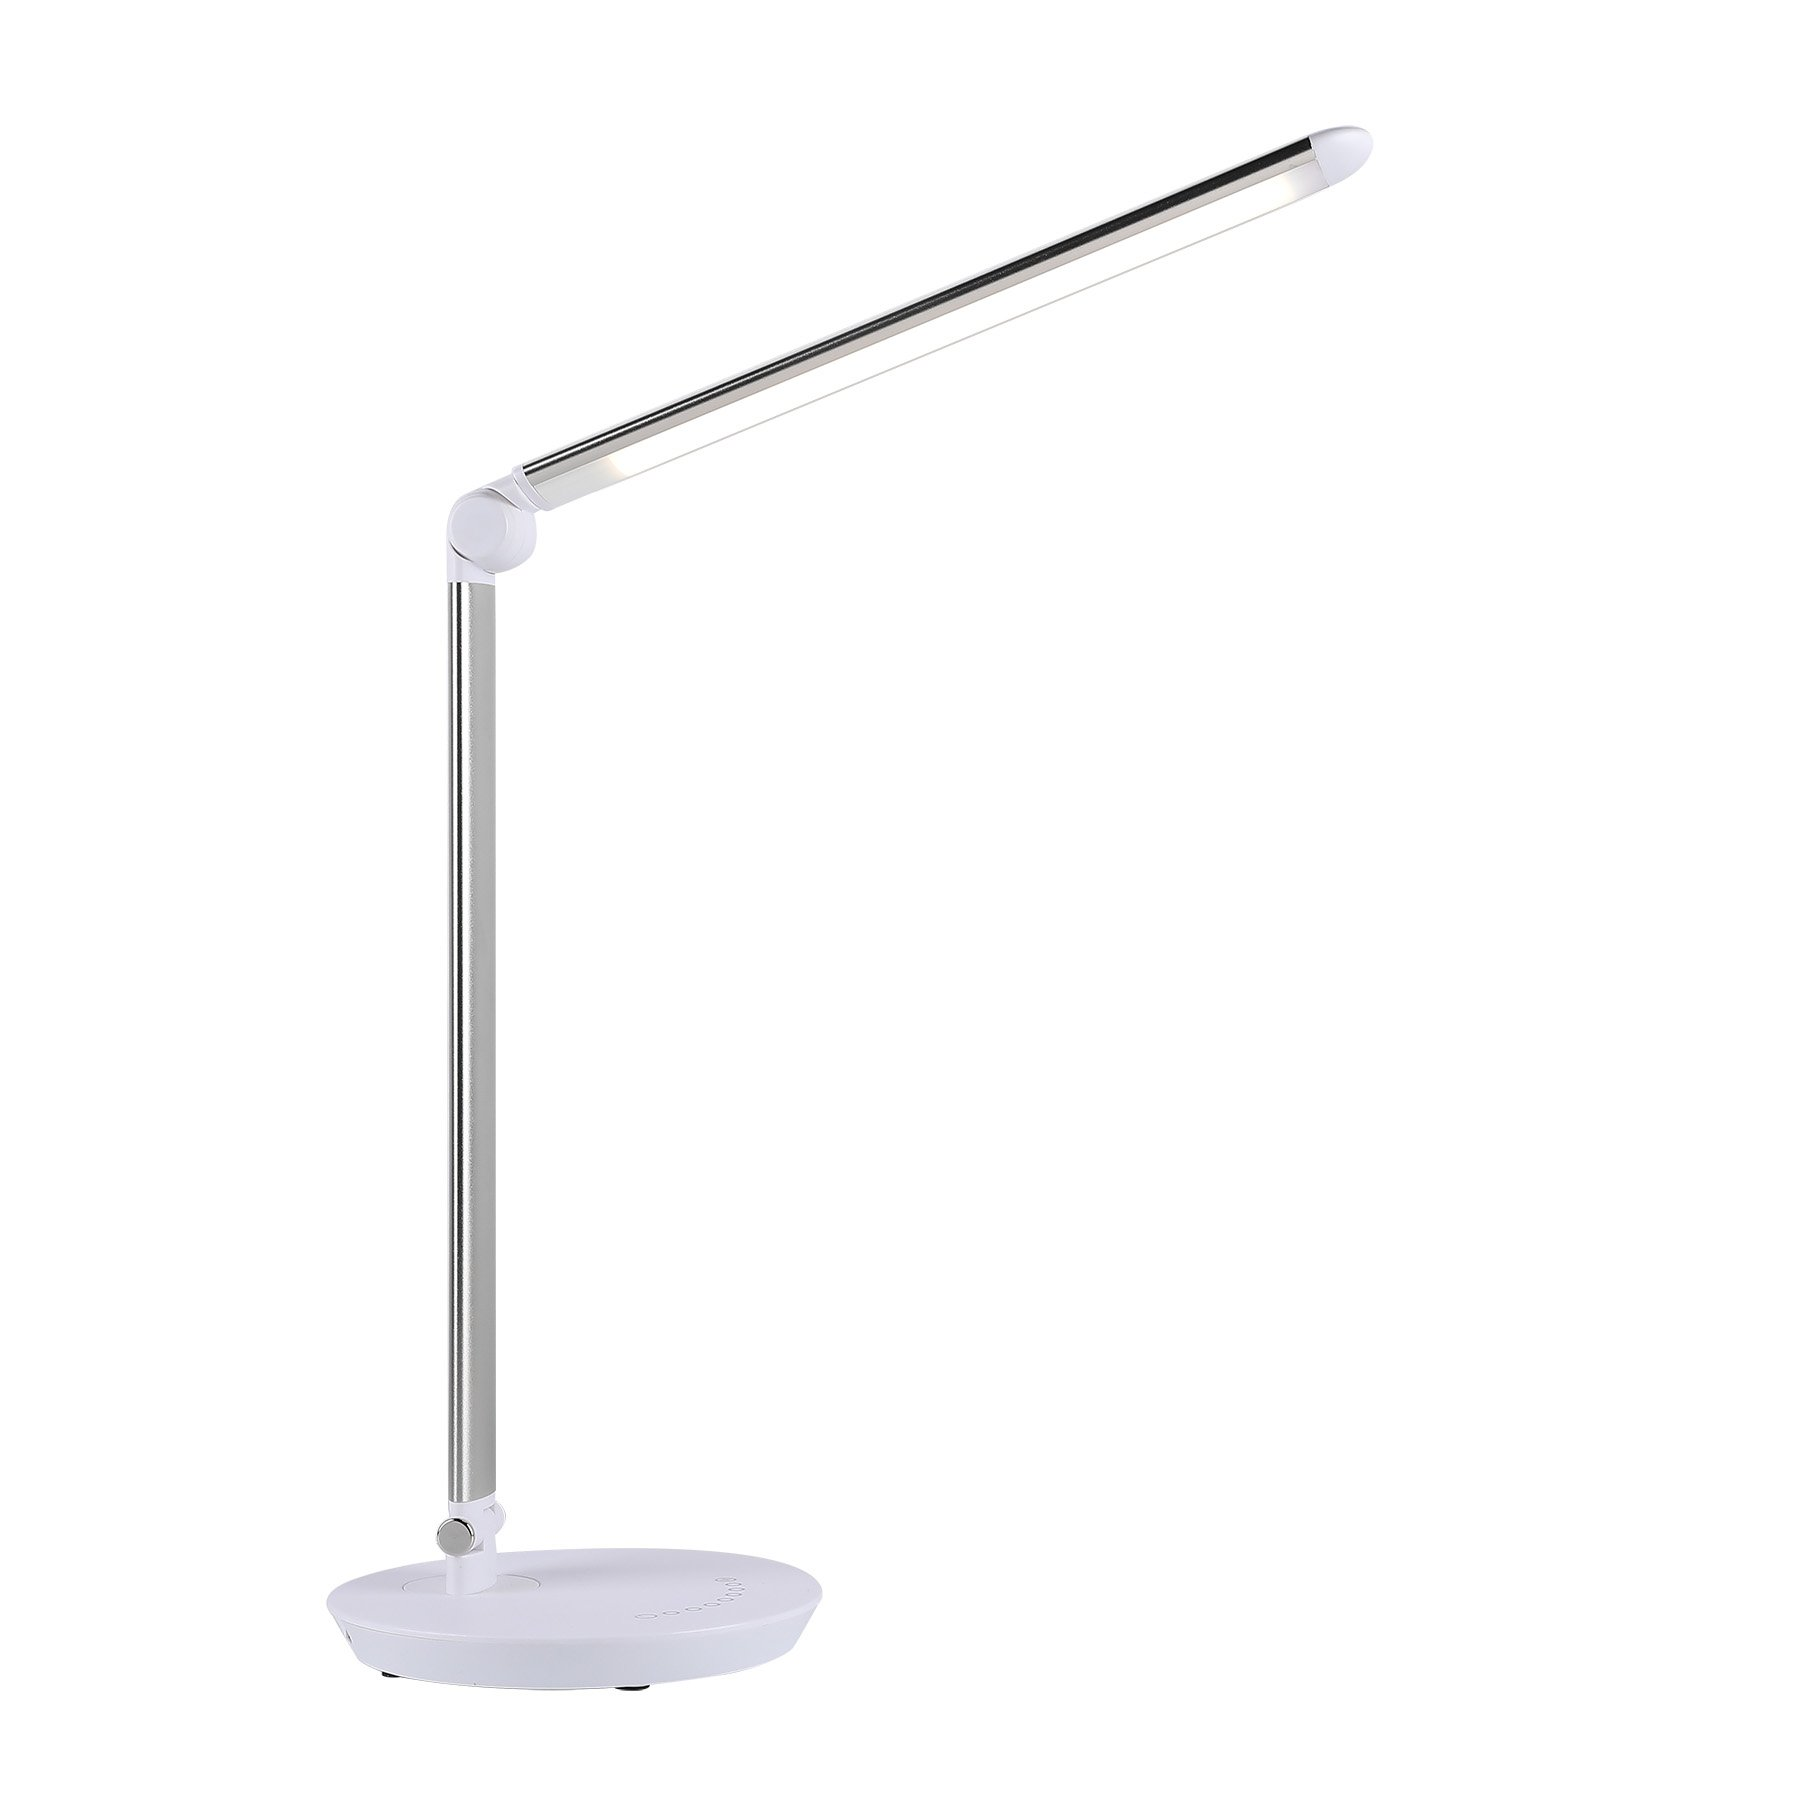 CO-Z LED Desk Lamp with USB Charging Port, Eye-Caring Rotatable Table Task Reading Lamp, Dimmable Touch Control Adjustable Home Office Laptop Computer Lamp with 7 Brightness Levels for Study Working